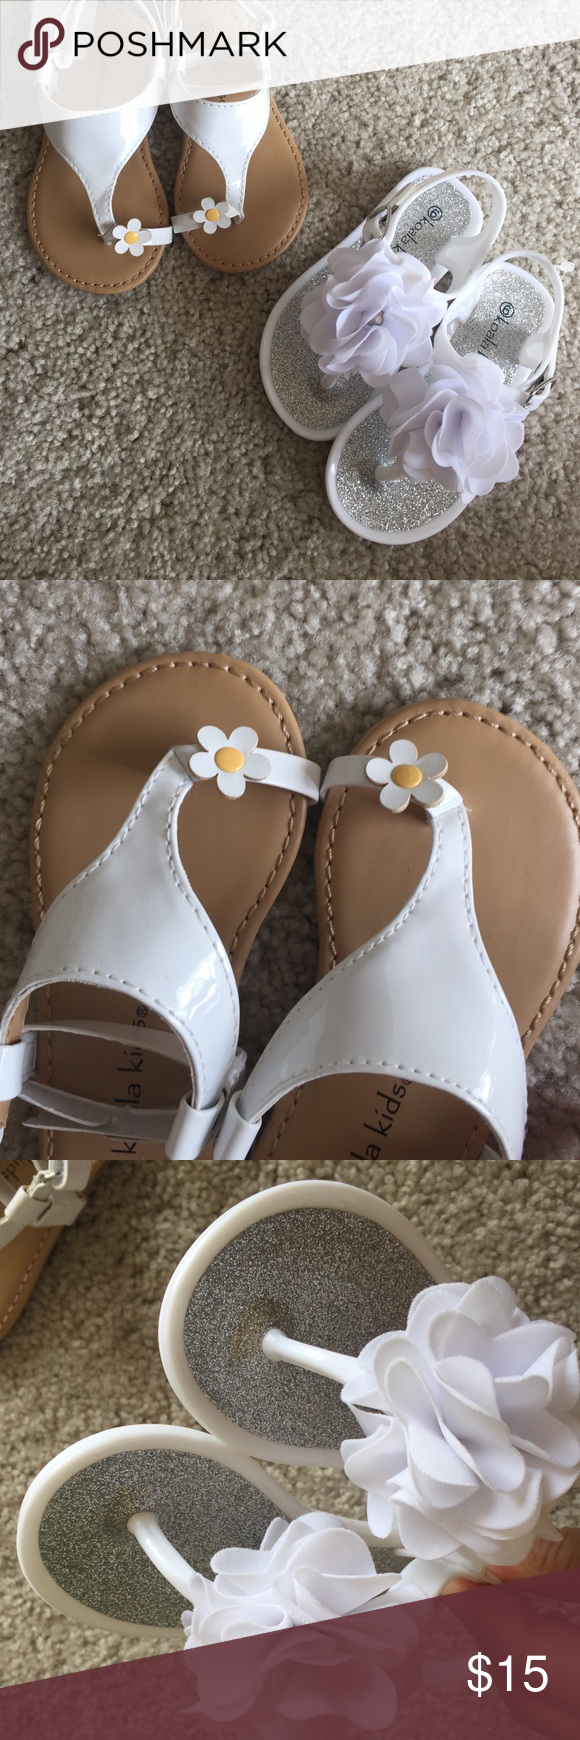 2 Infant size 6 sandals bundle Never worn new. Both size 6 infant girl. In perfect new condition. White flower sandals are jelly shoes. No trade. Price firm Koala Kids Shoes Sandals & Flip Flops